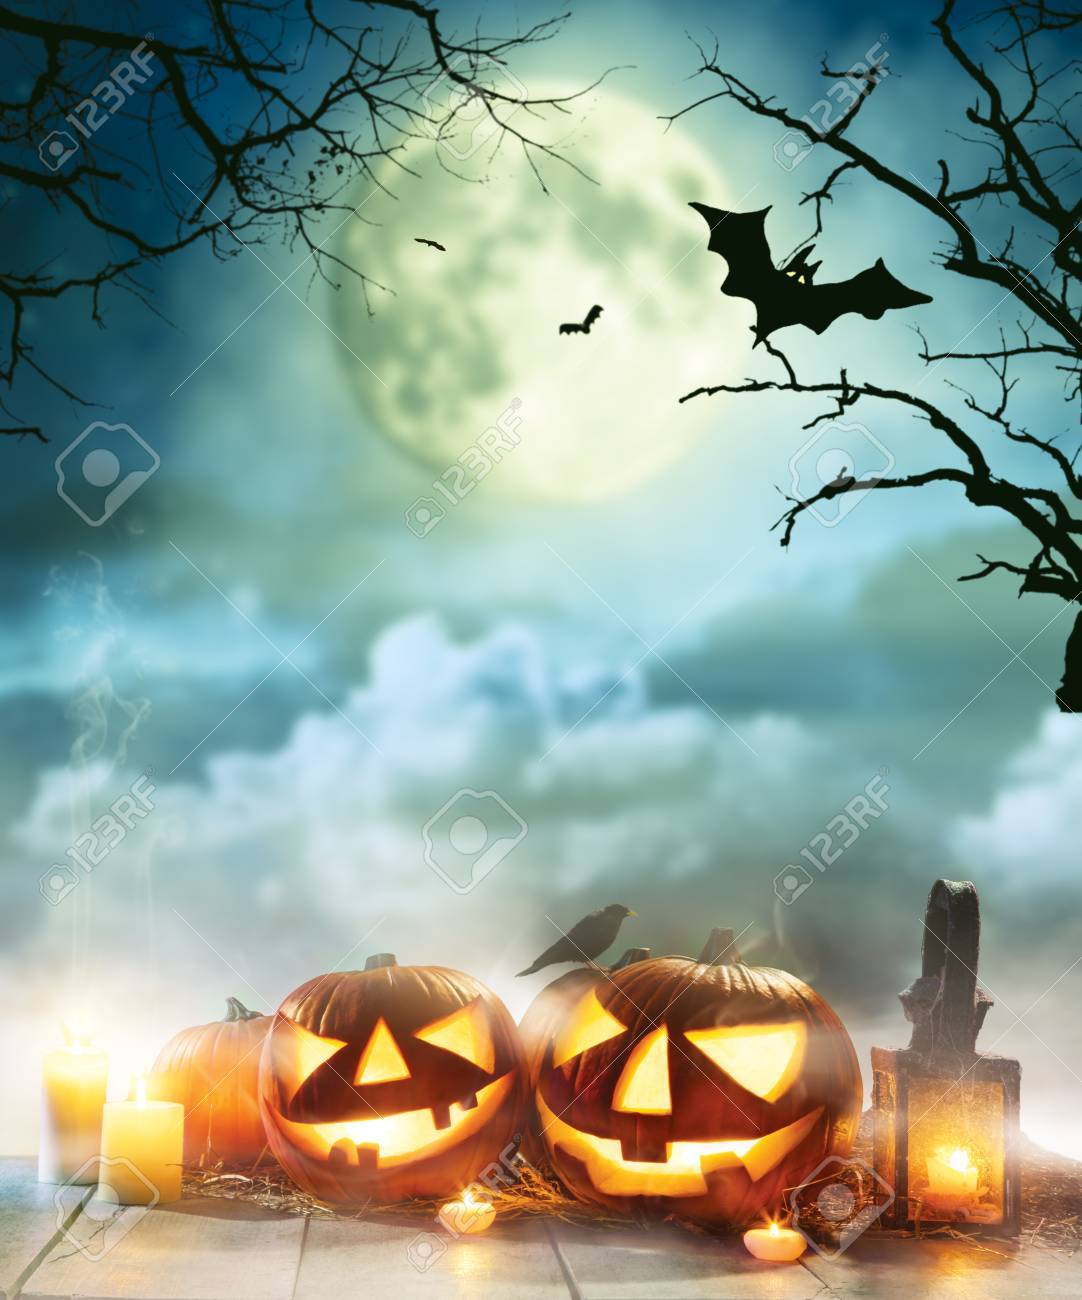 Halloween Spooky.Spooky Halloween Pumpkins On Wooden Planks With Dark Horror Background